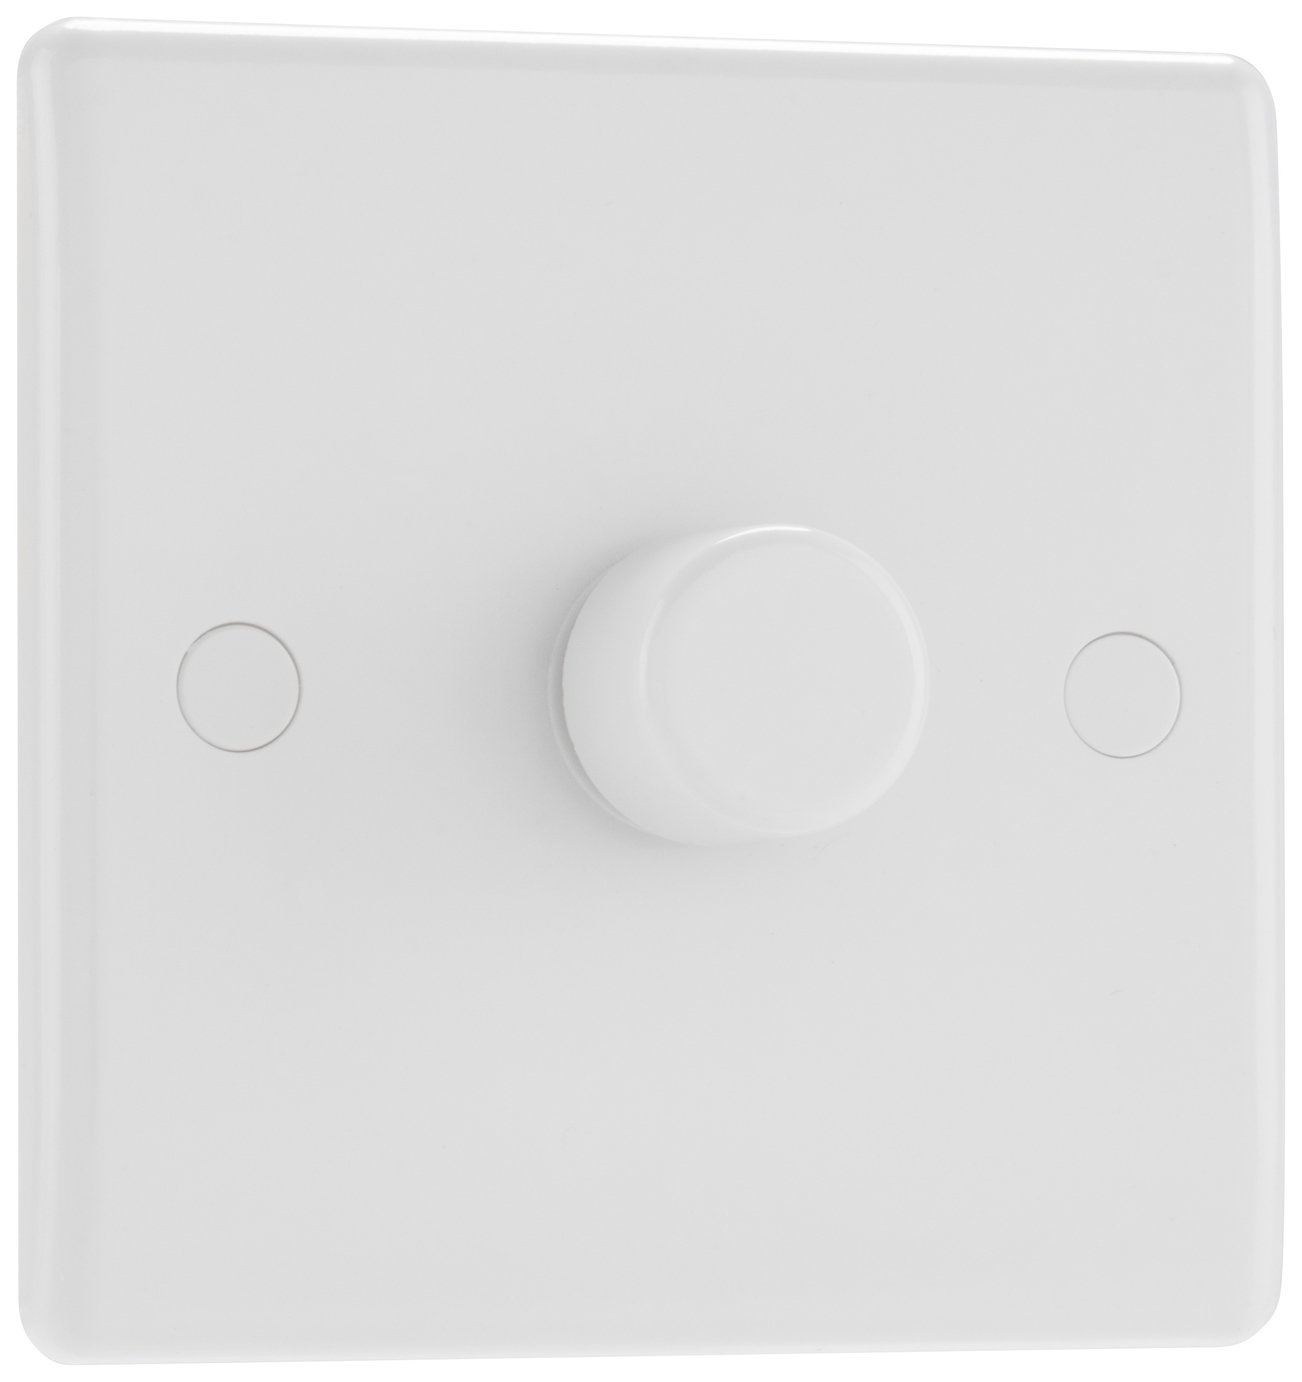 BG Single 2 Way Dimmer Switch - White